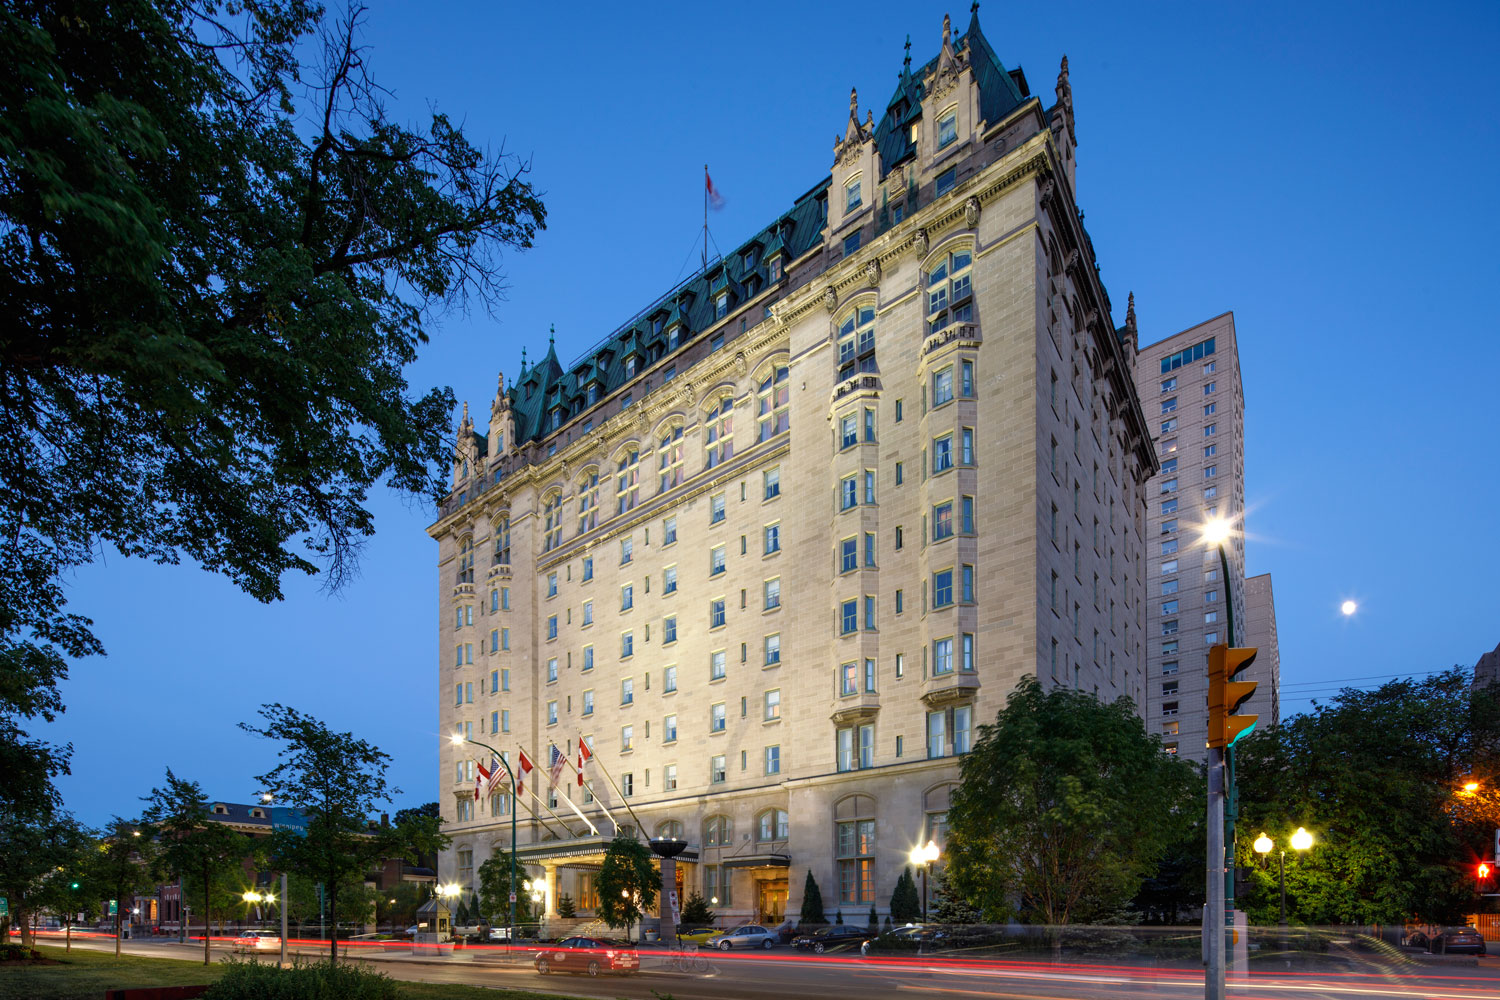 cohlmeyer-architecture-restoration-winnipeg-fort-garry-hotel.jpg